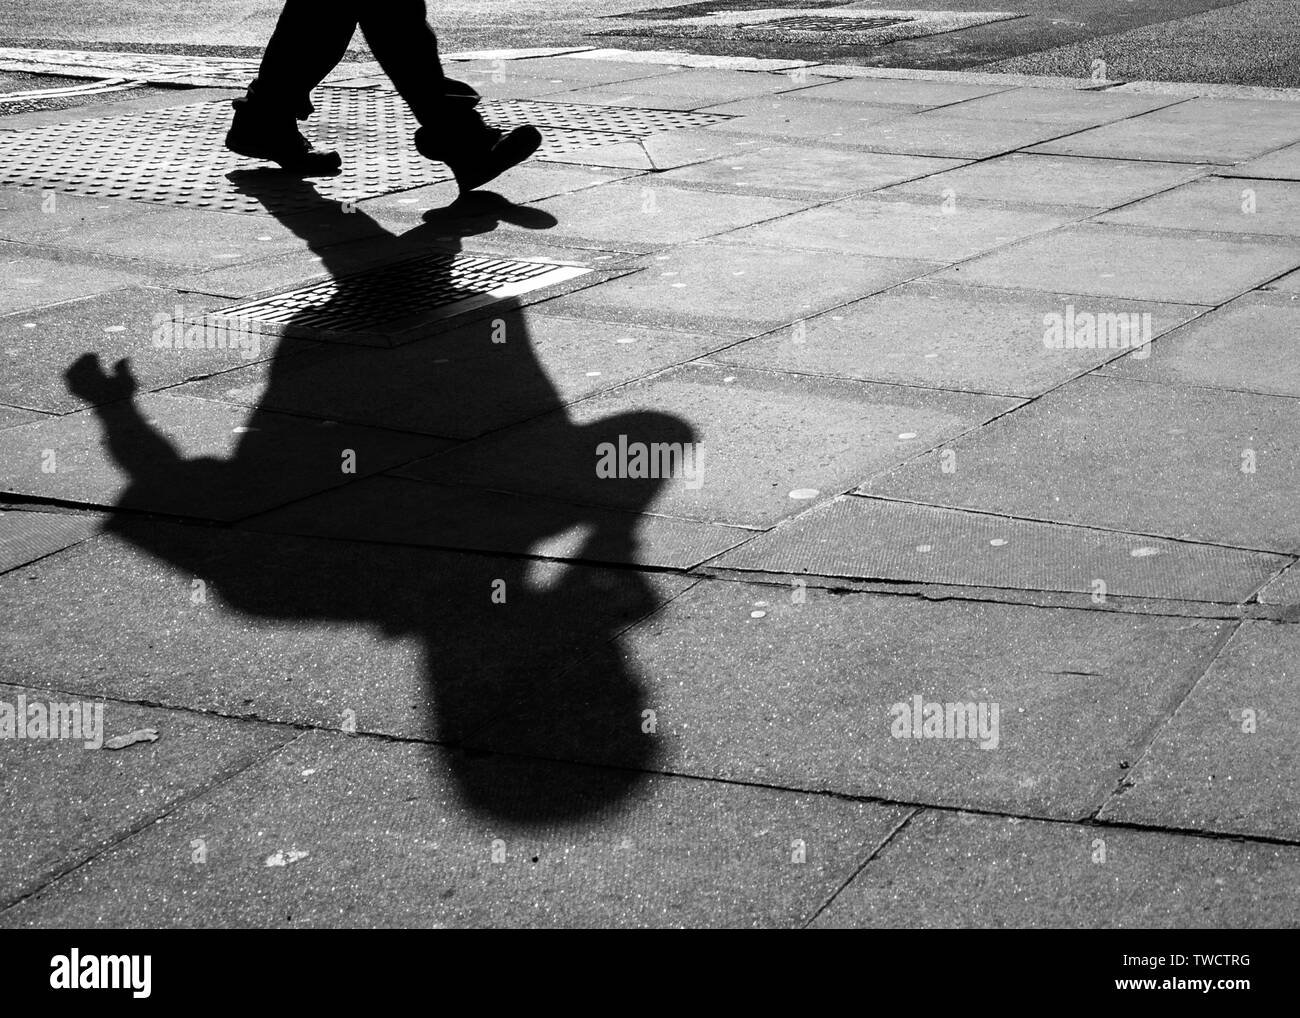 Pavement Shadow of a Person Using a Cell Phone. abstract. Stock Photo